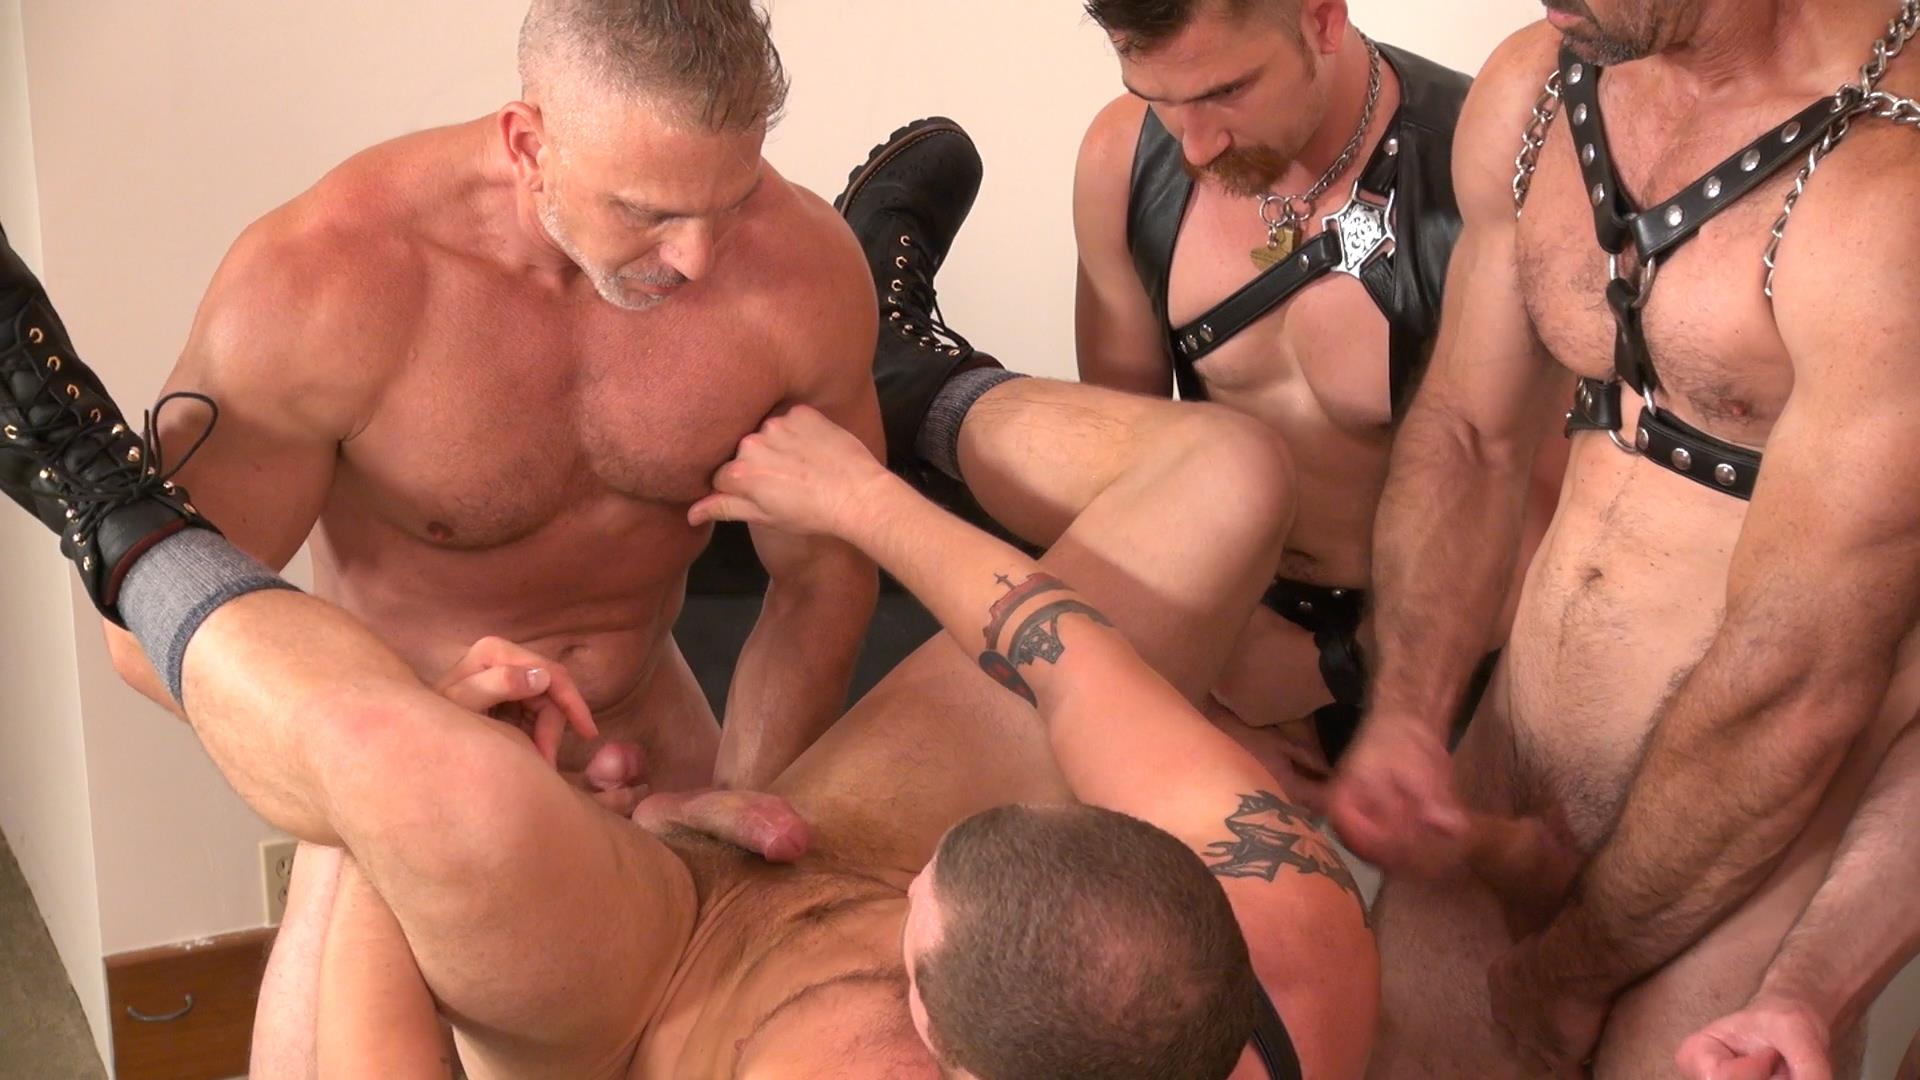 Raw and Rough Jason Mitchell Steven Richards Sam Dixon Blue Bailey Dayton OConnor Jose del Toro Bareback Bathhouse Amateur Gay Porn 08 Blue Bailey Getting Fucked Bareback By 5 Guys At A Bathhouse